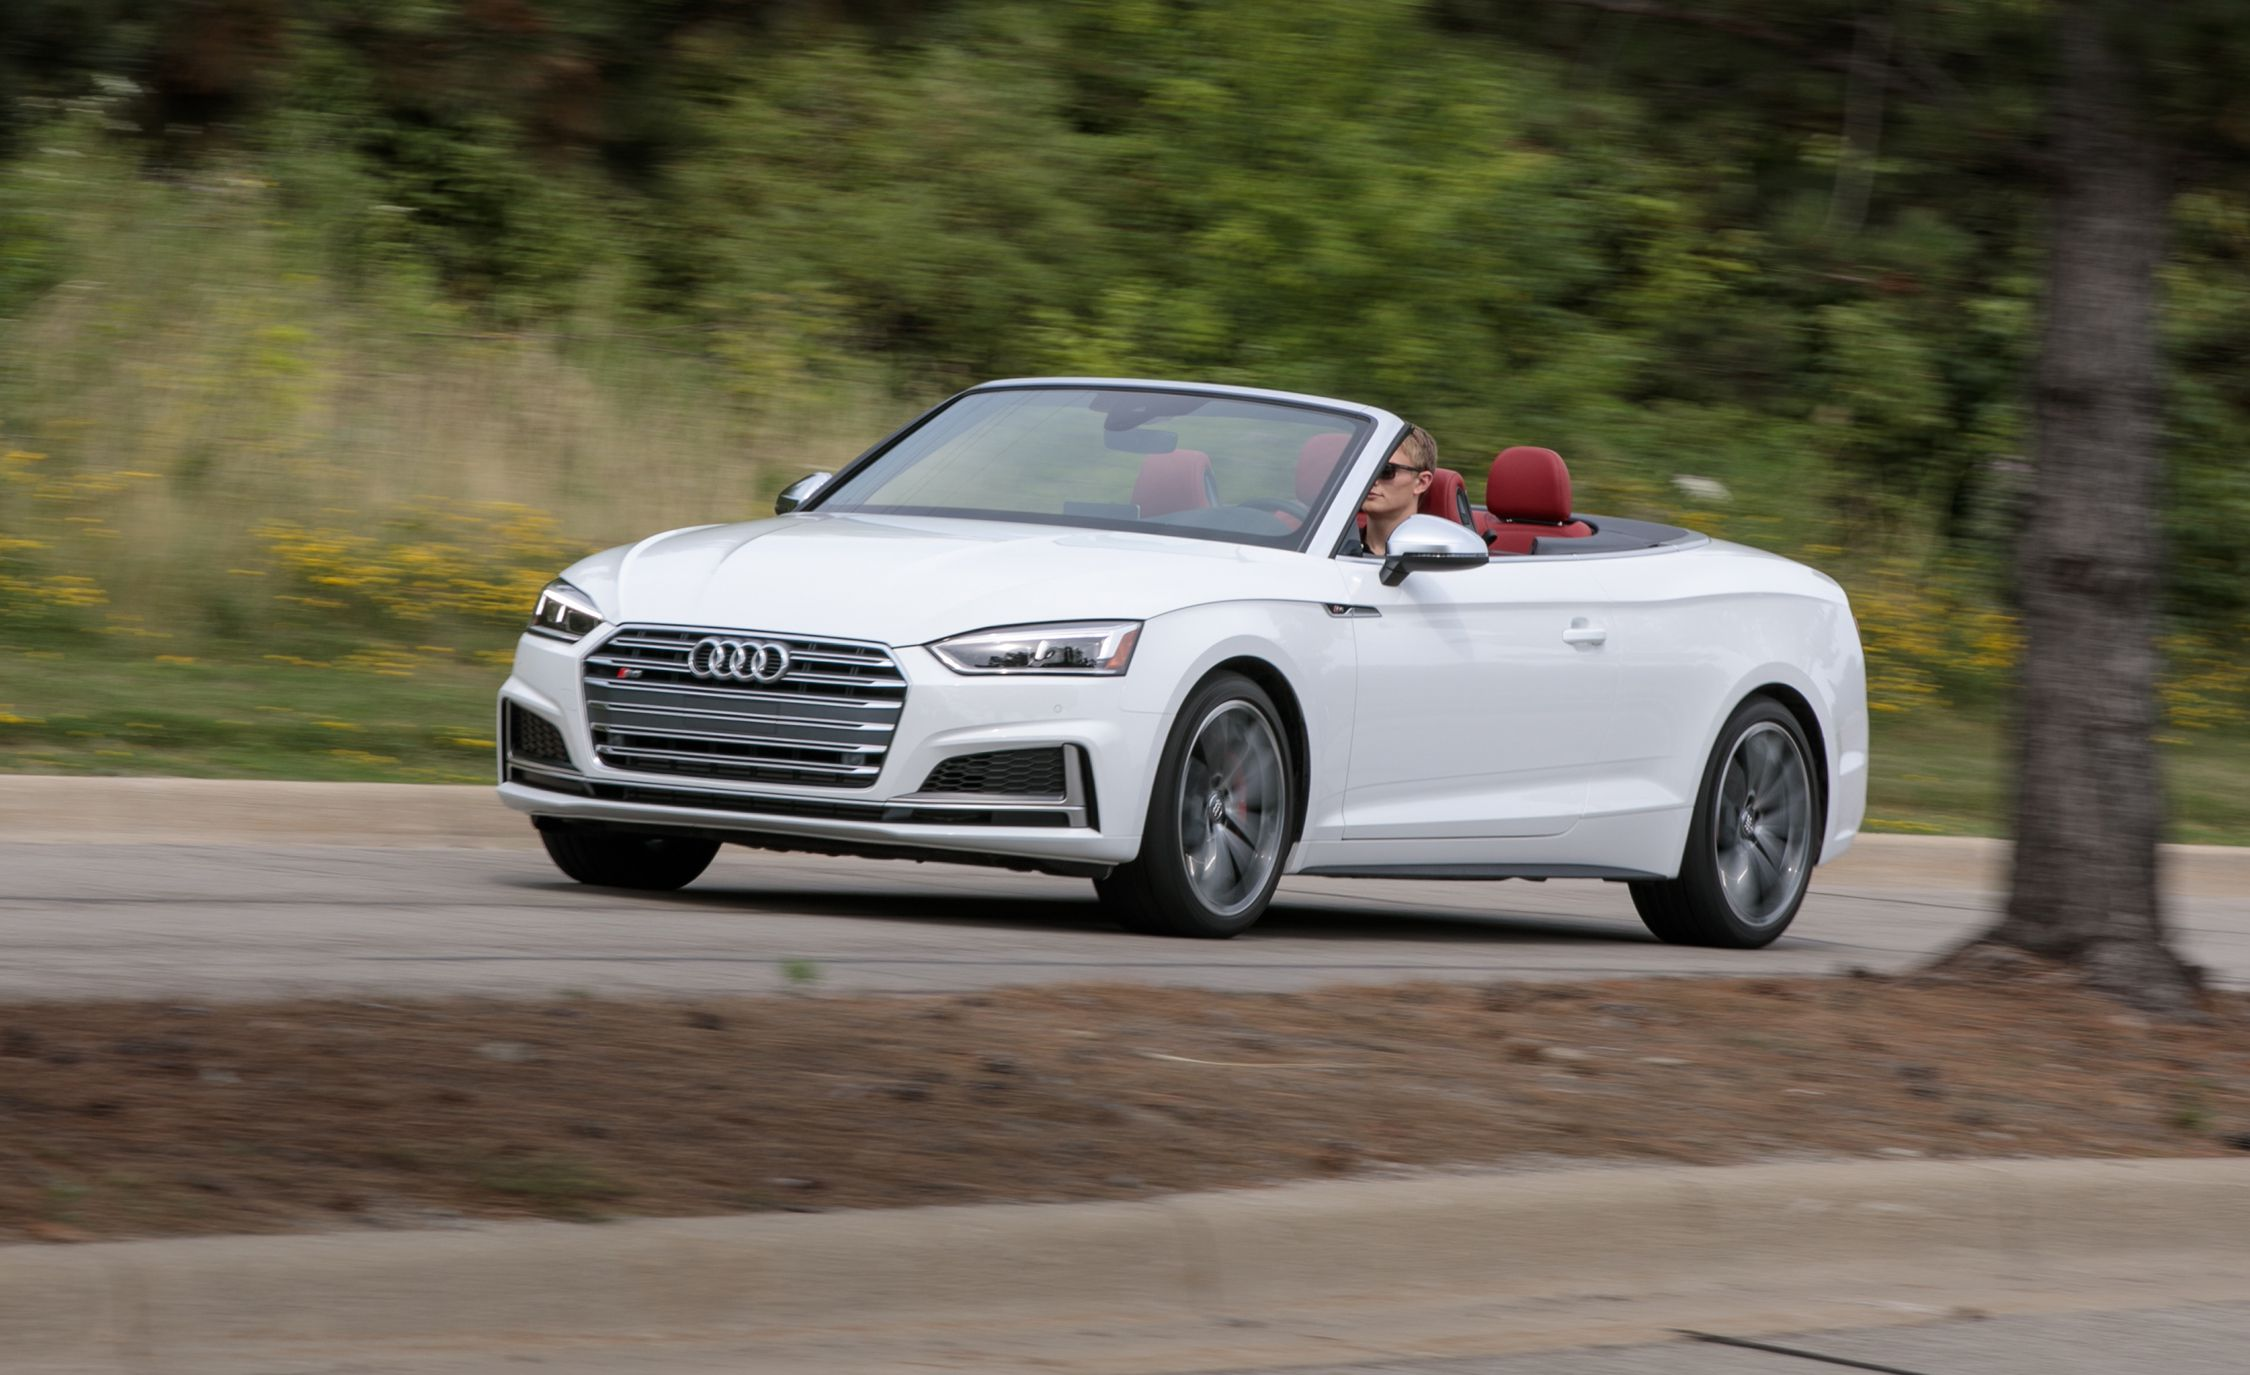 54 All New 2020 Audi S5 Cabriolet Review and Release date